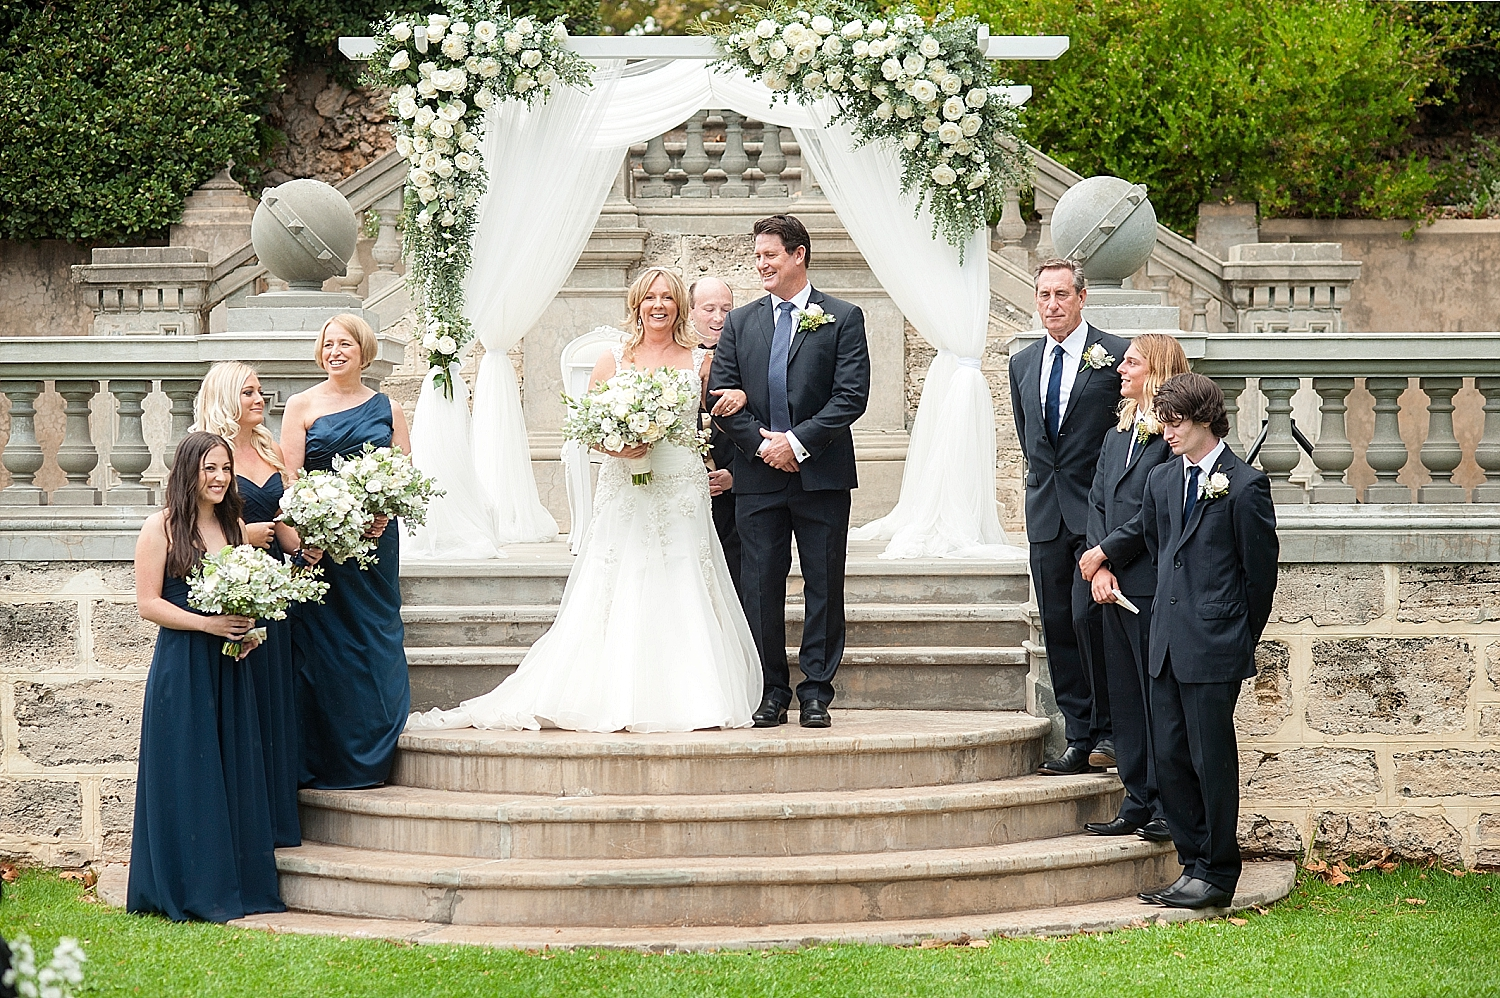 22wedding ceremony on steps at cottesloe civic centre  perth 26.jpg